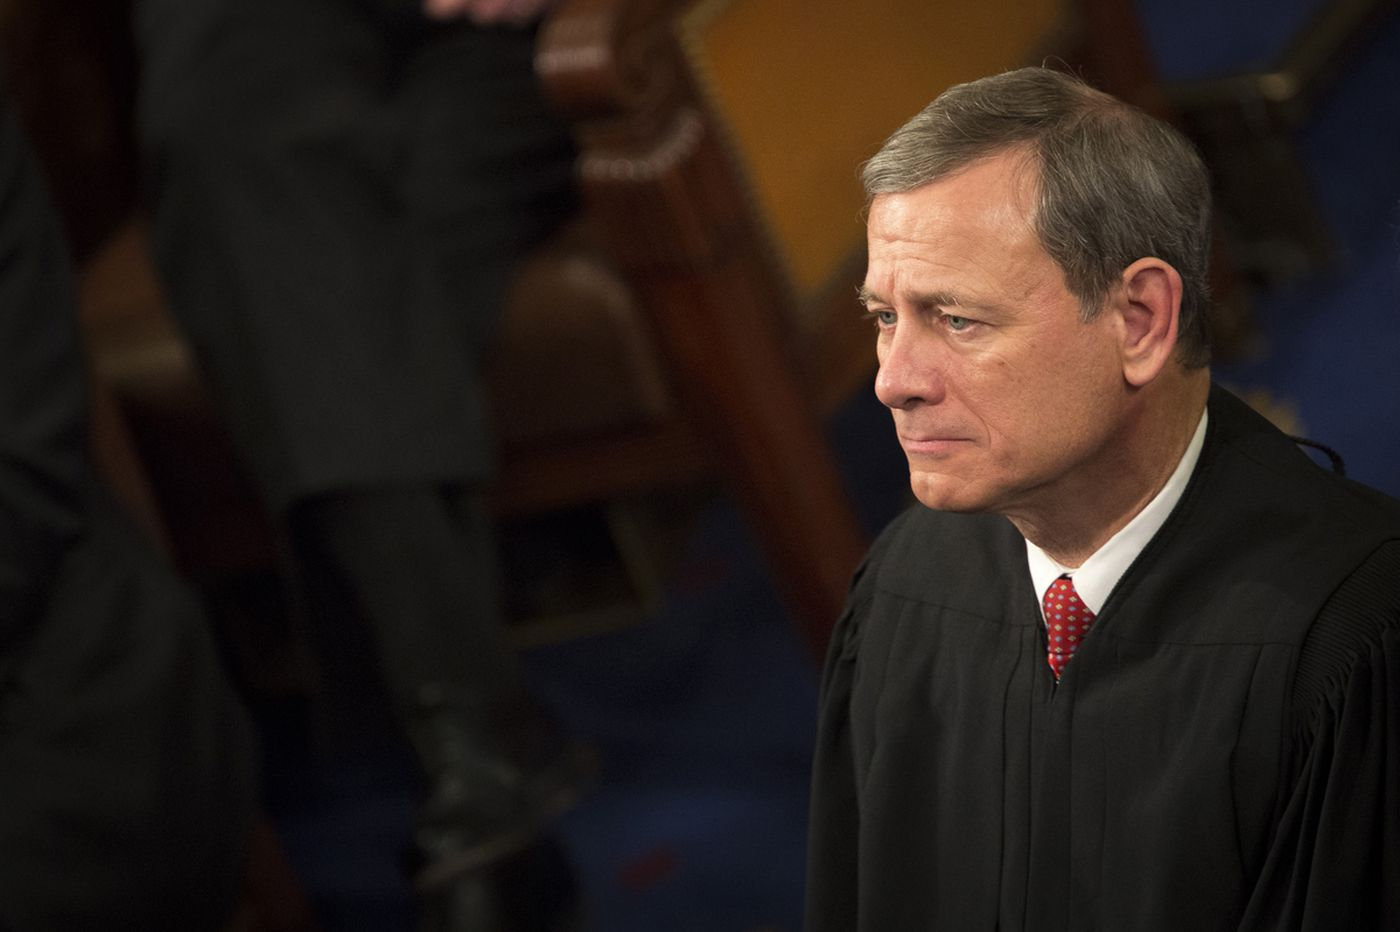 Rebuking Trump's criticism of 'Obama judge,' Chief Justice Roberts defends judiciary as 'independent'